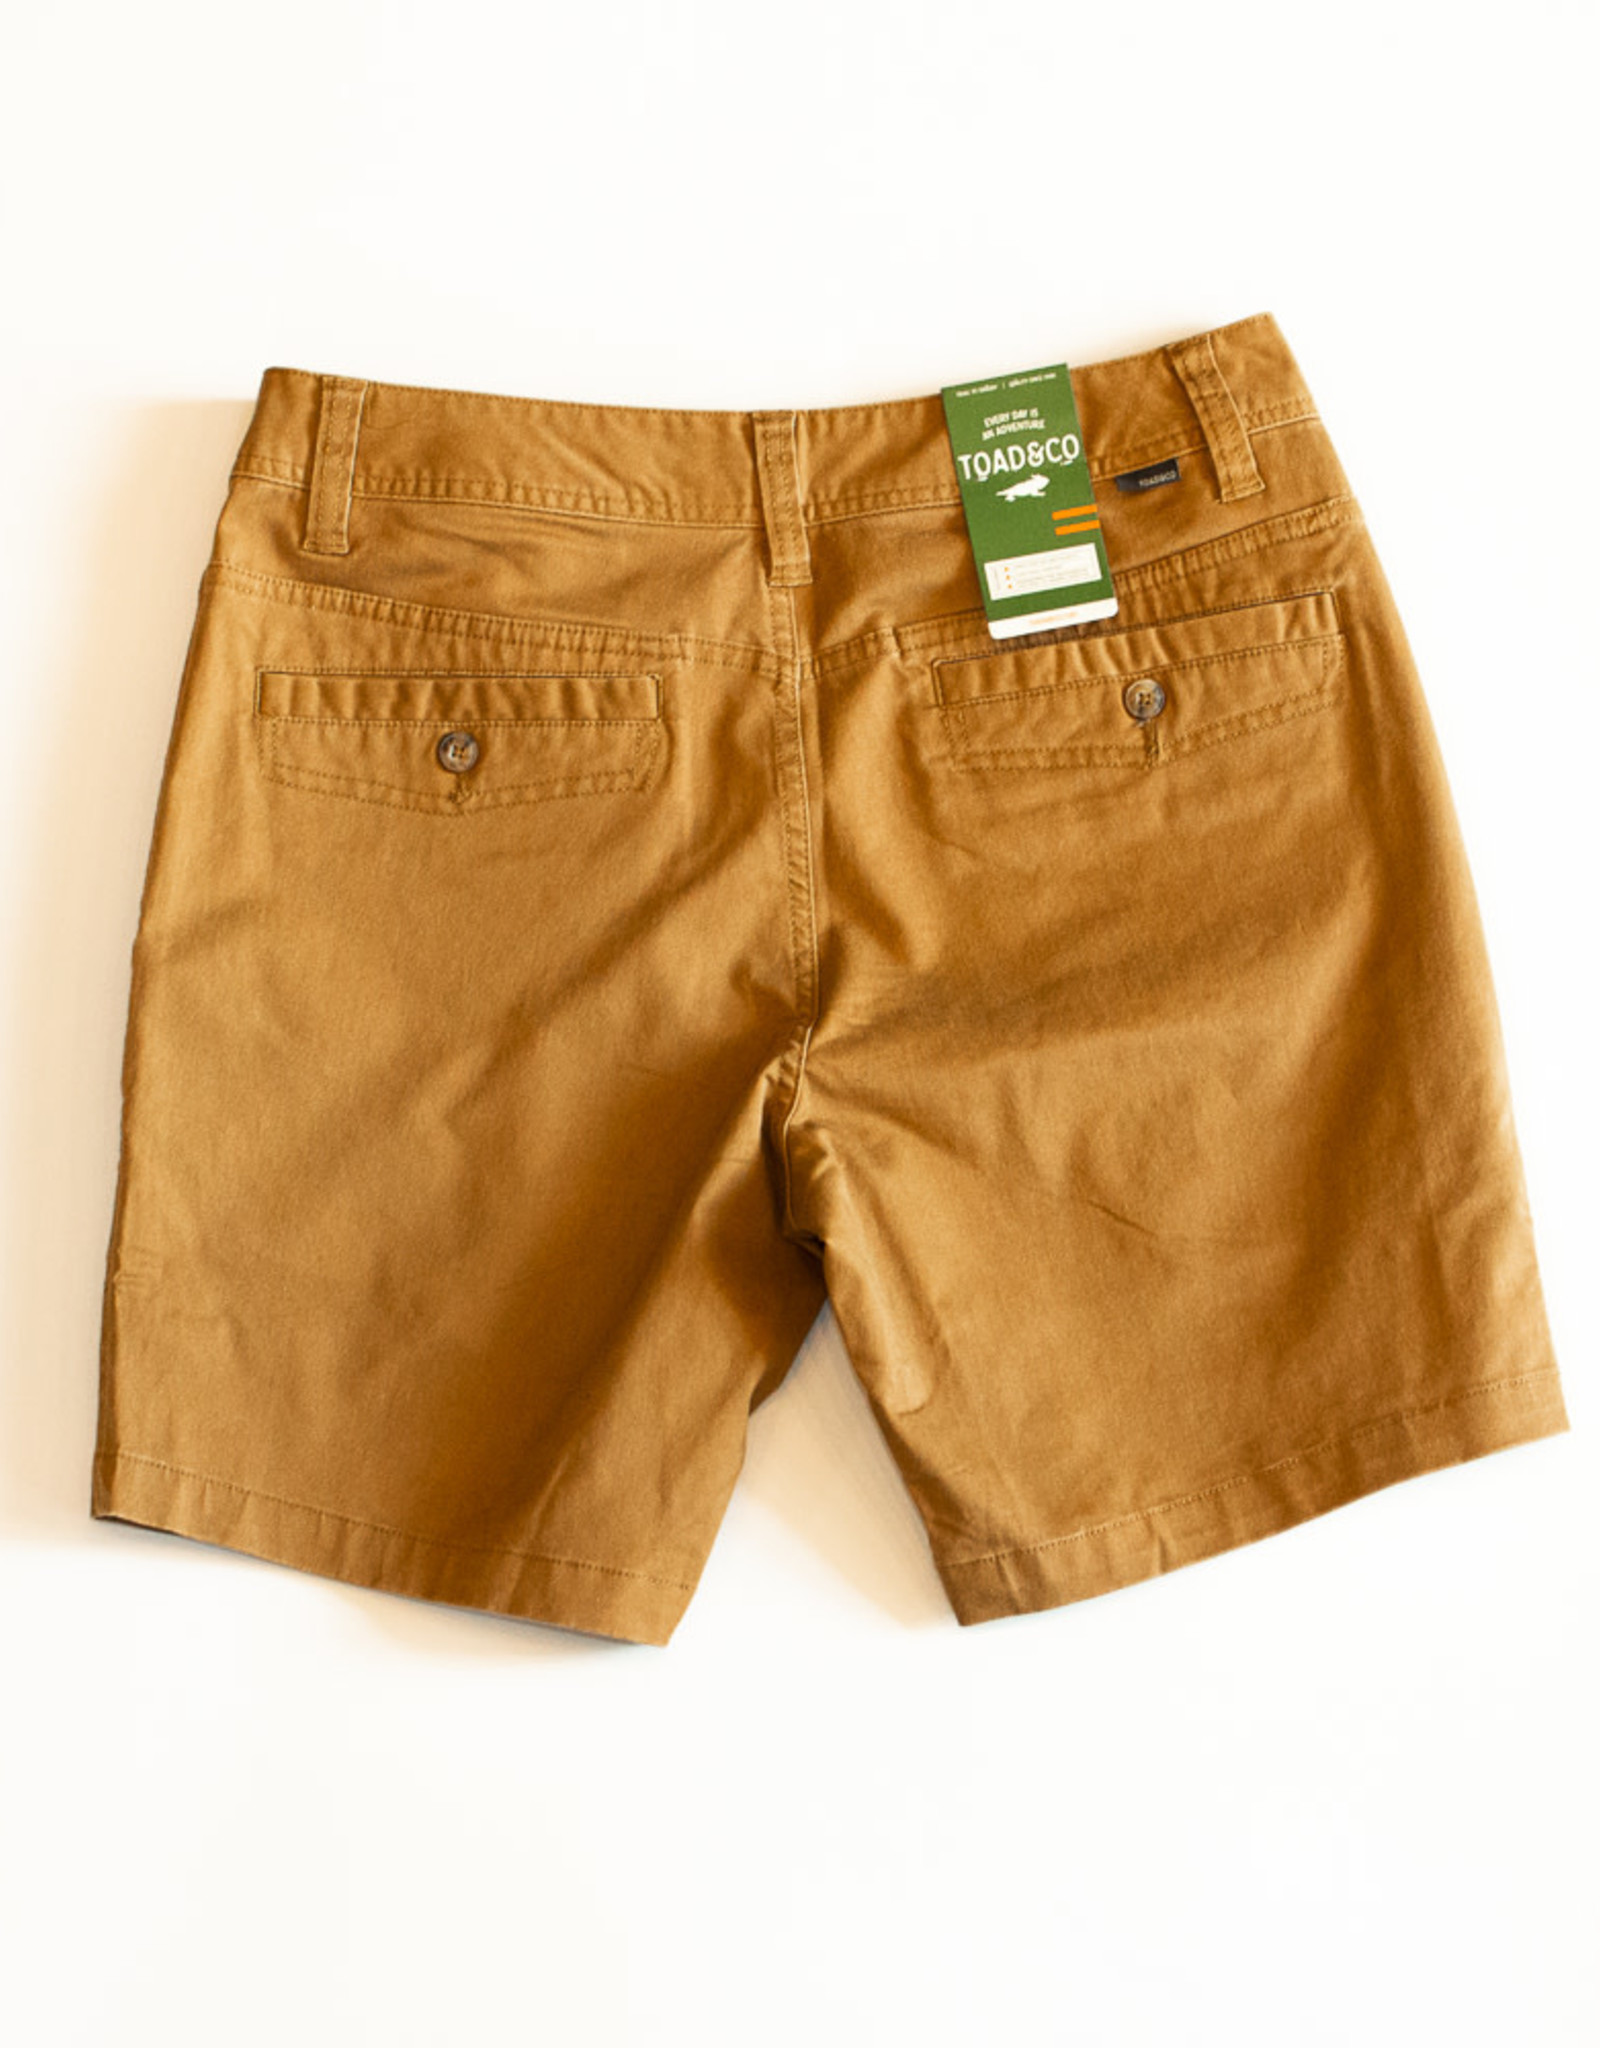 Toad & Co Mission Ridge Short - Tabac